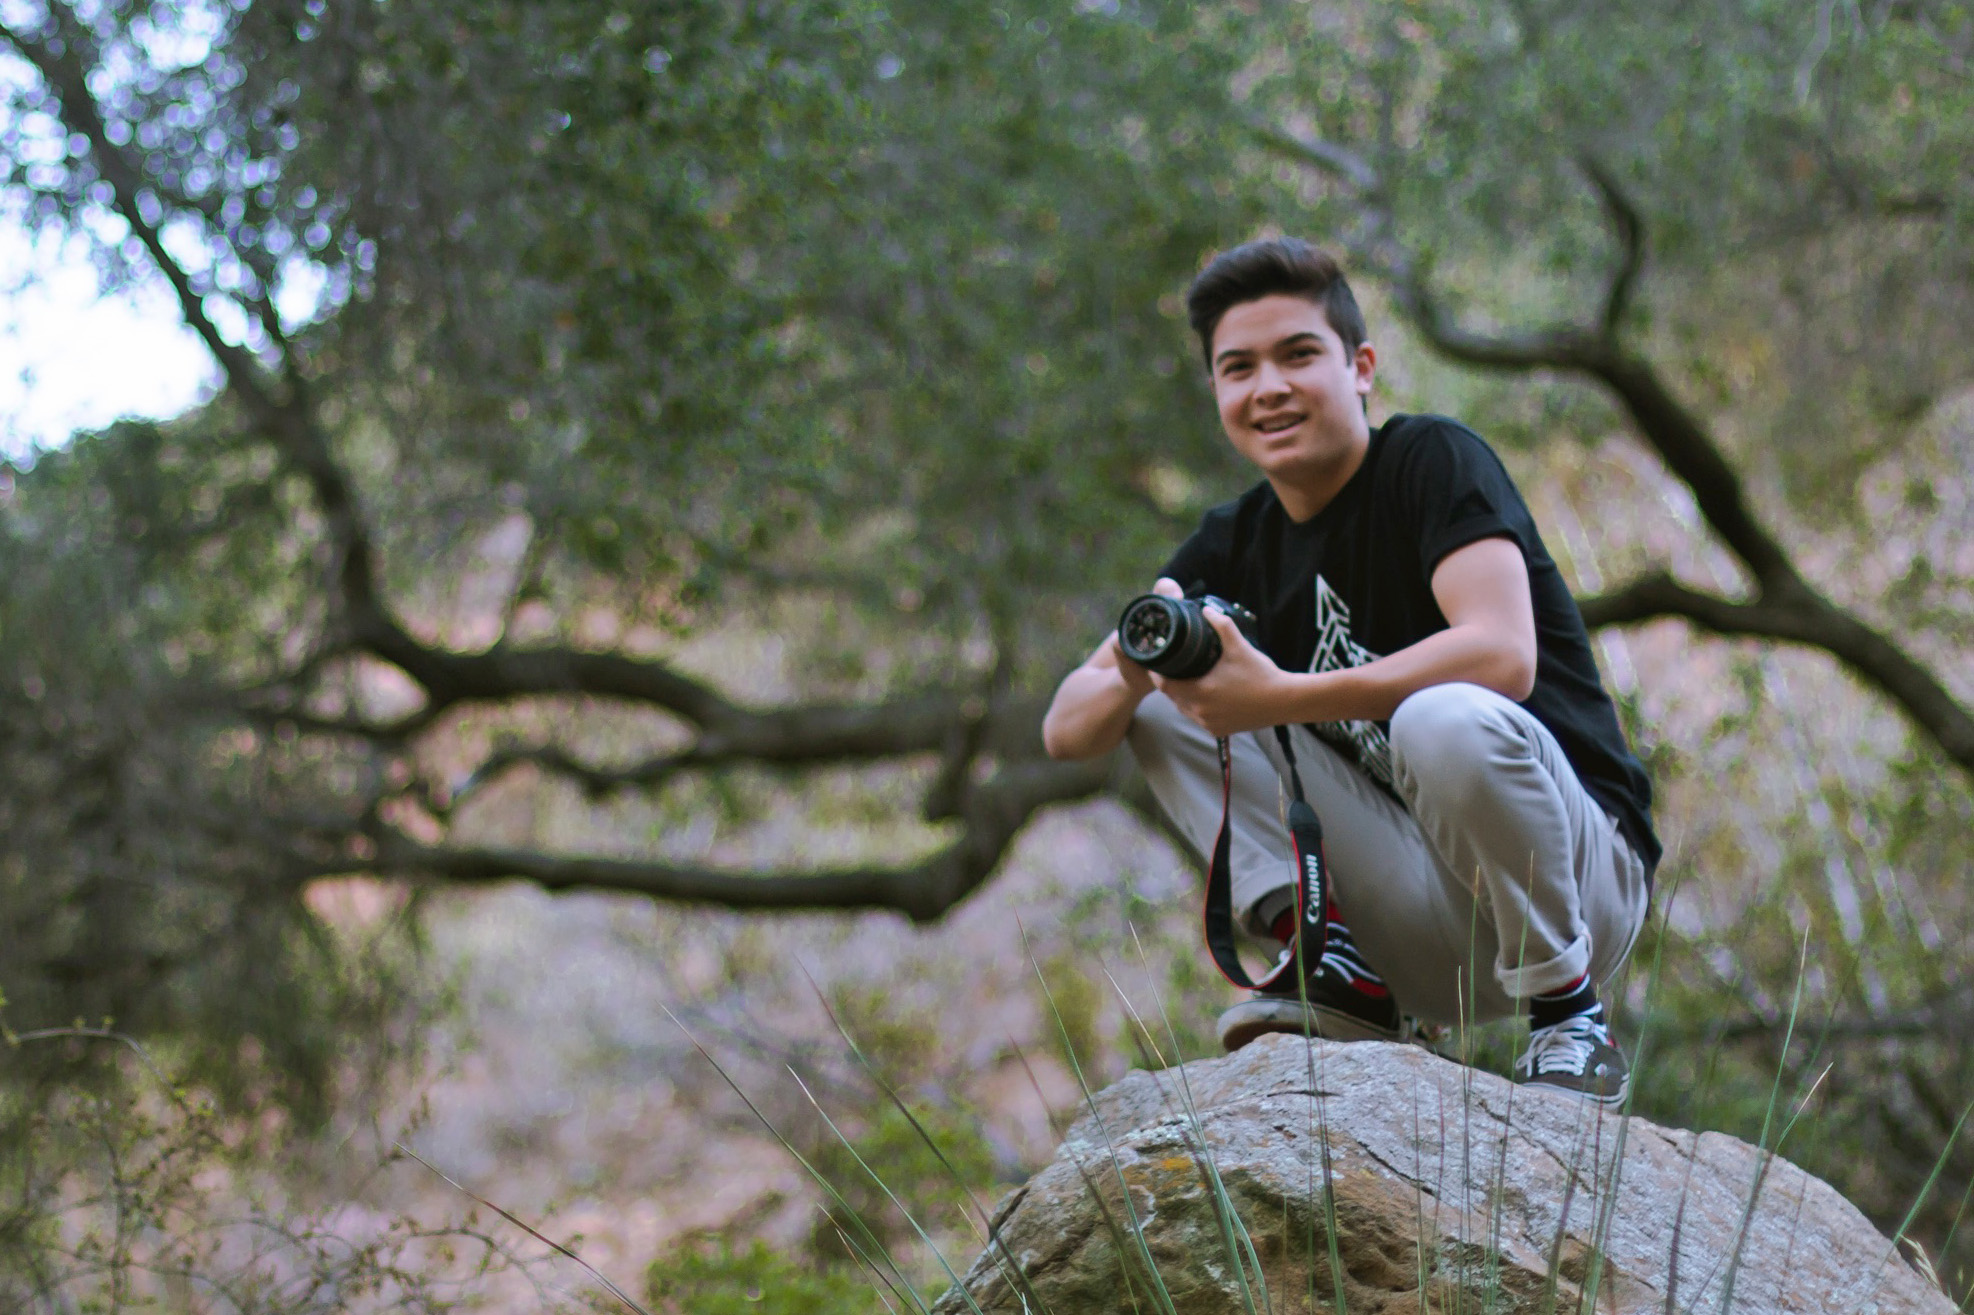 Noah Miyake smiles while holding a camera and squatting on a rock in front of a large oak tree